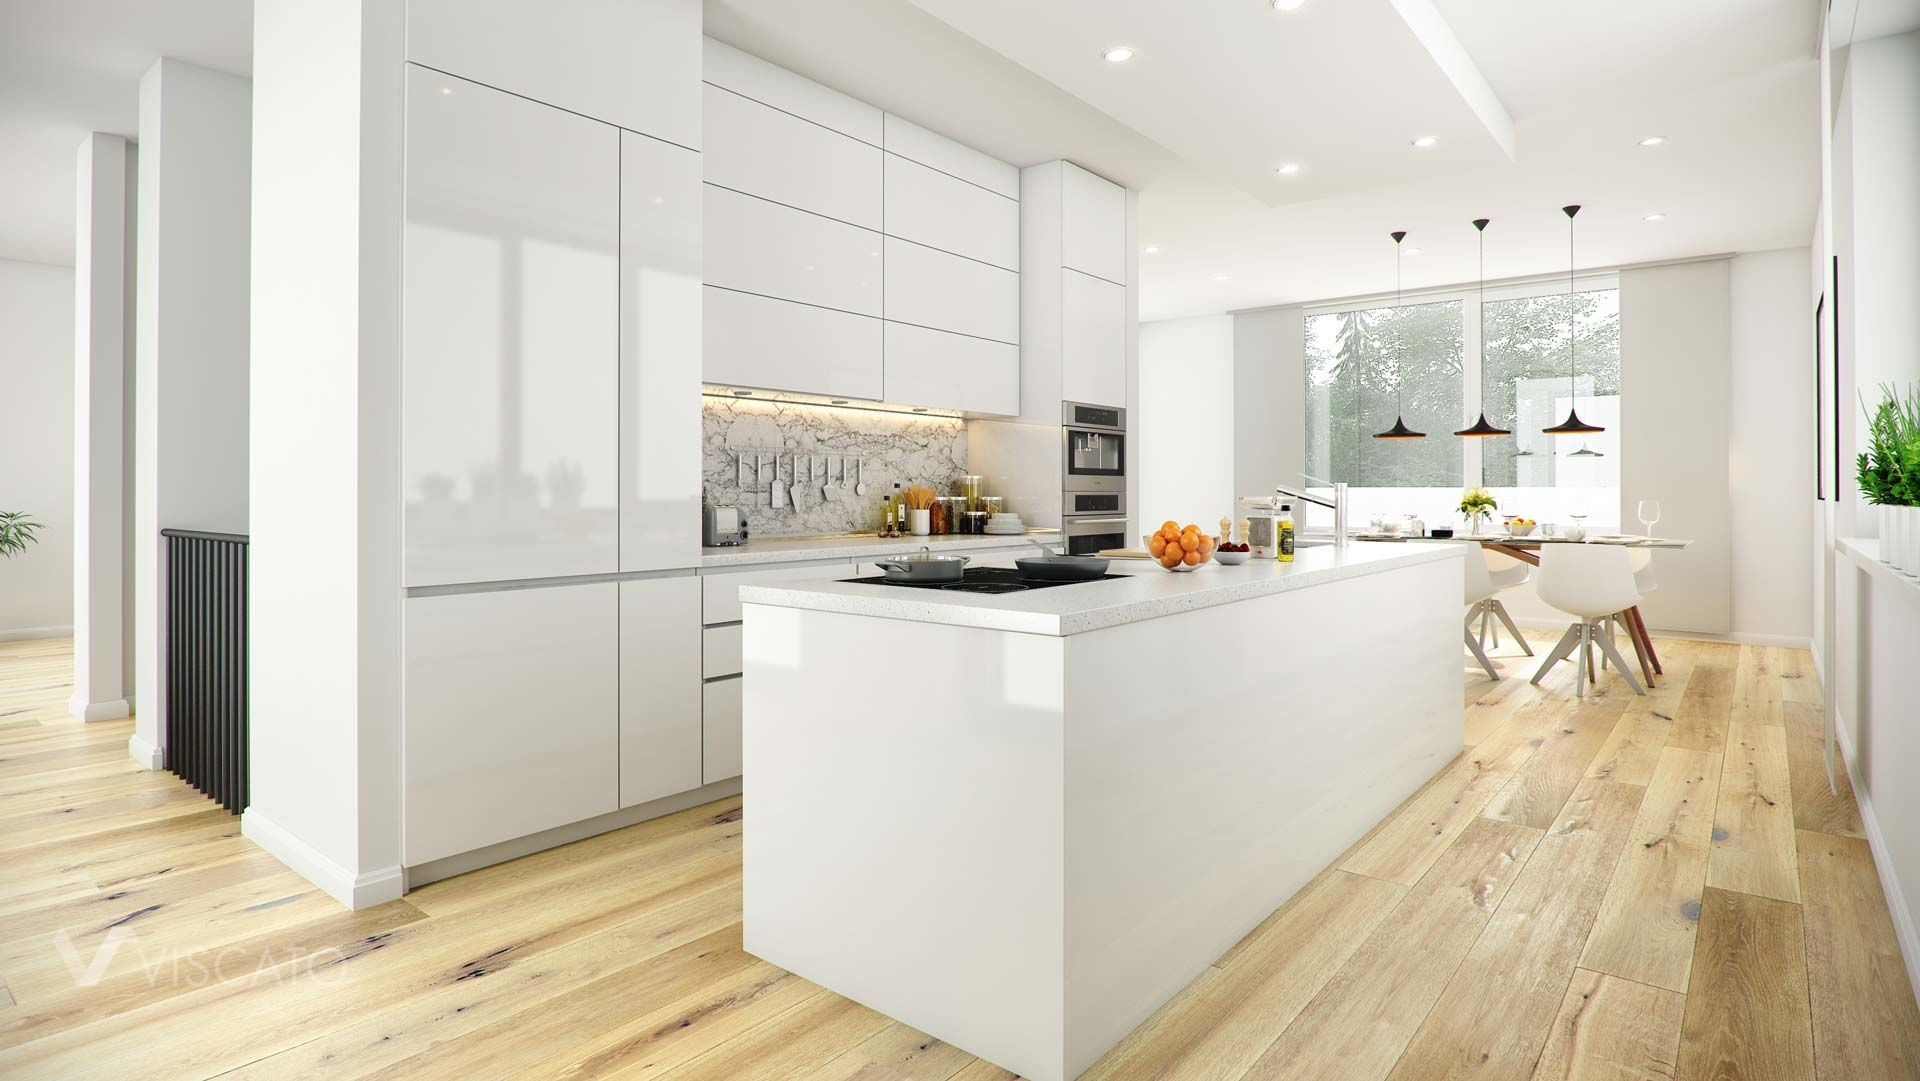 interior 3d visualisation of a kitchen with a modern kitchen island